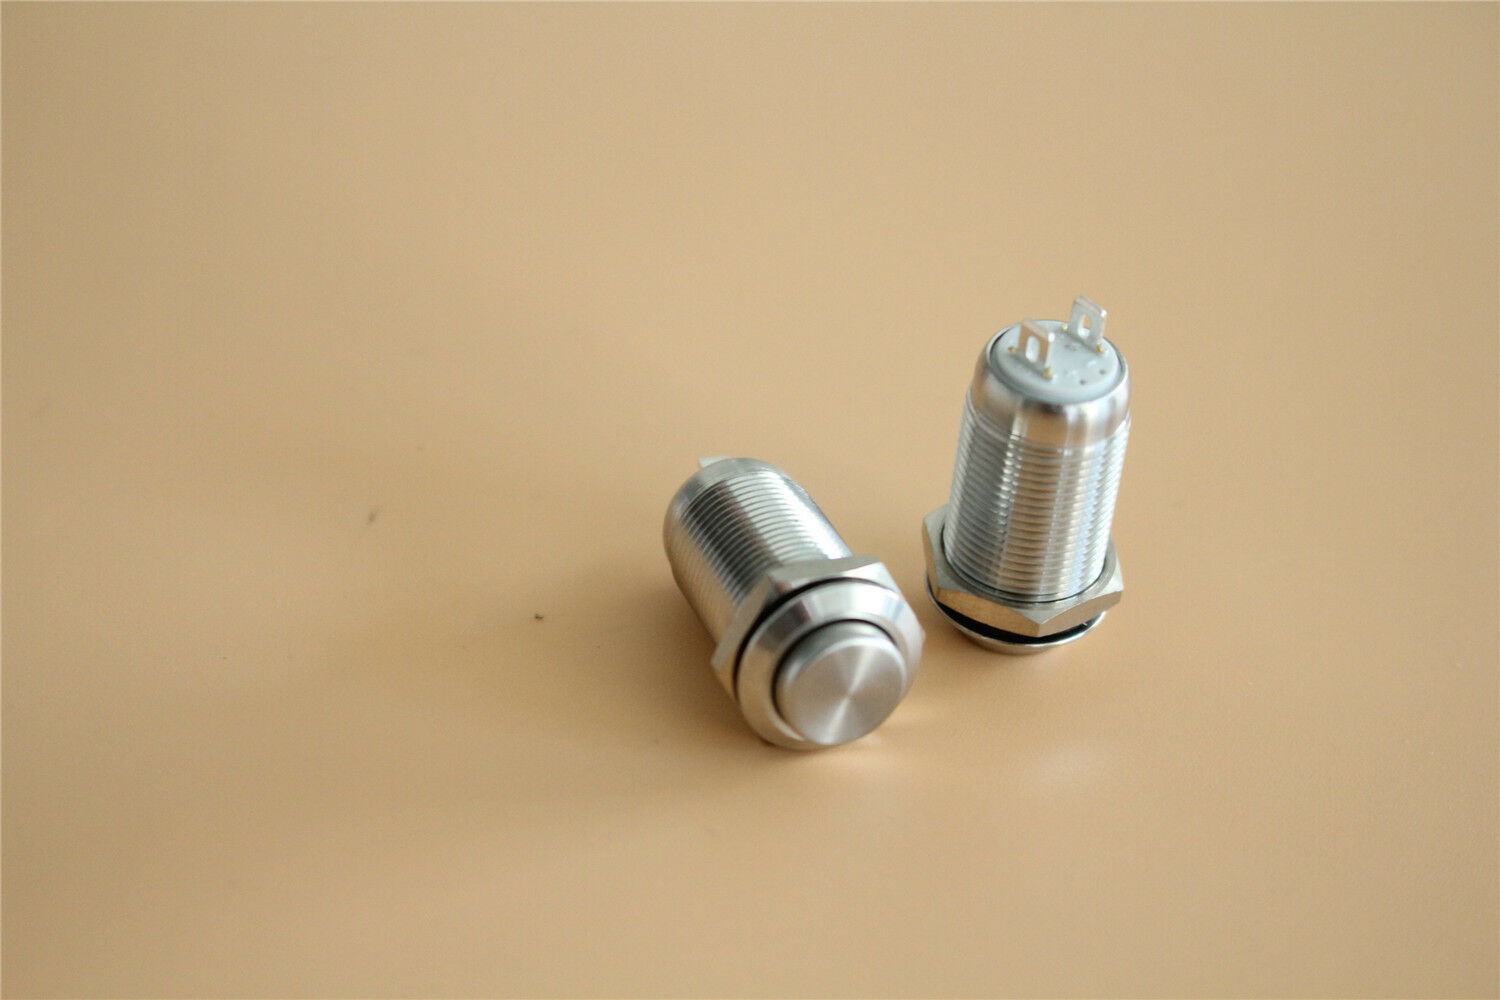 Switchcraft Push button Switch 0N275463-2 Lot Of 2 V45